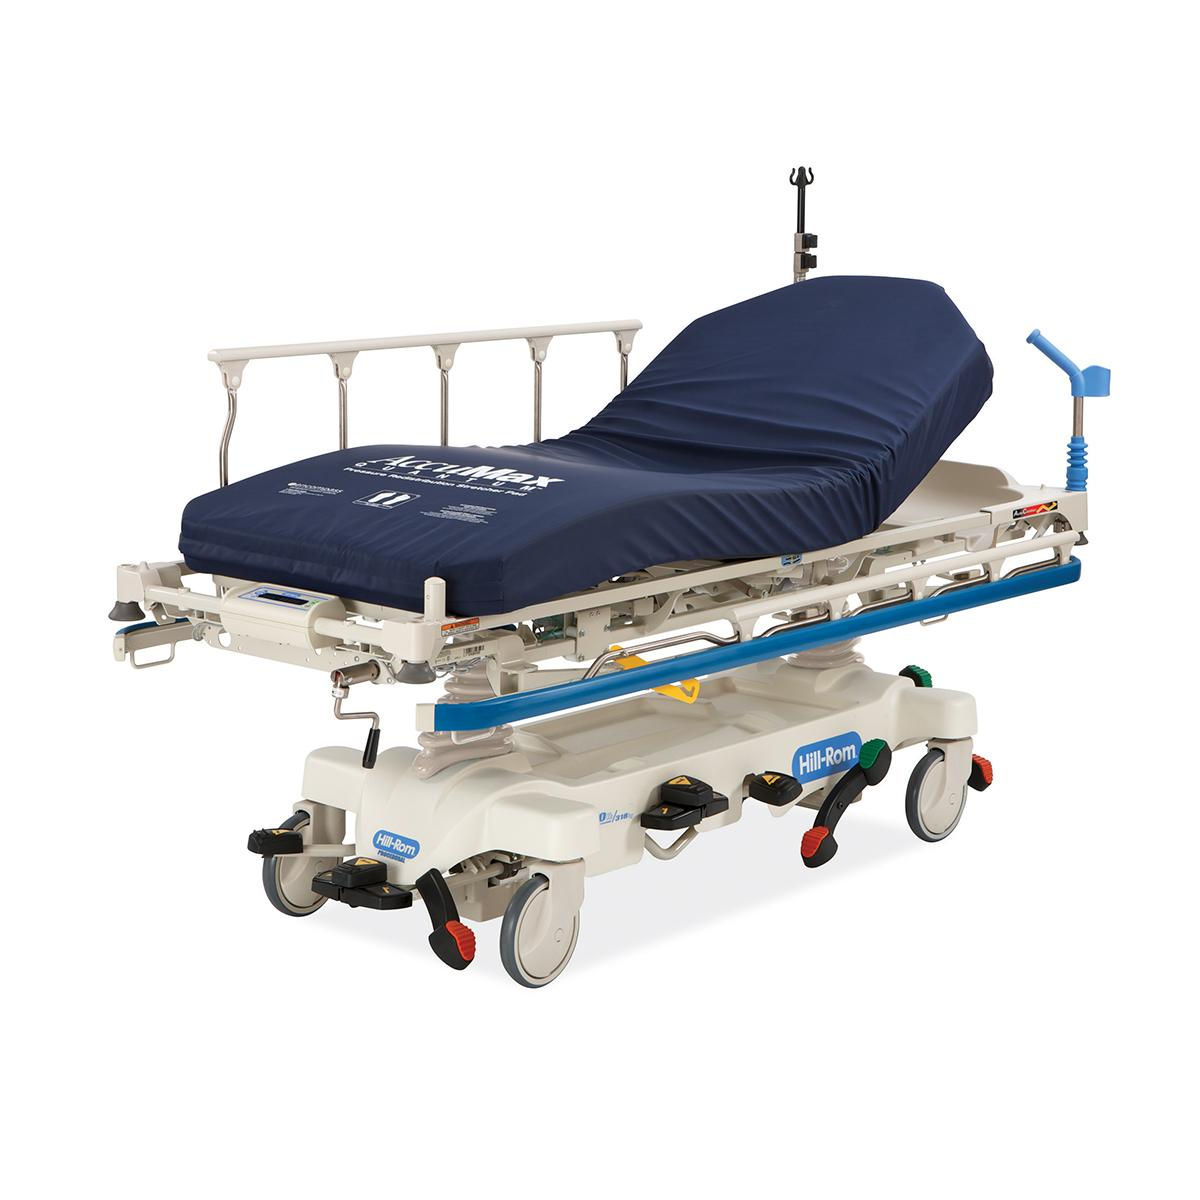 Hillrom Procedural Stretcher, diagonal view with AccuMax Quantum™ surface and blue bumper.